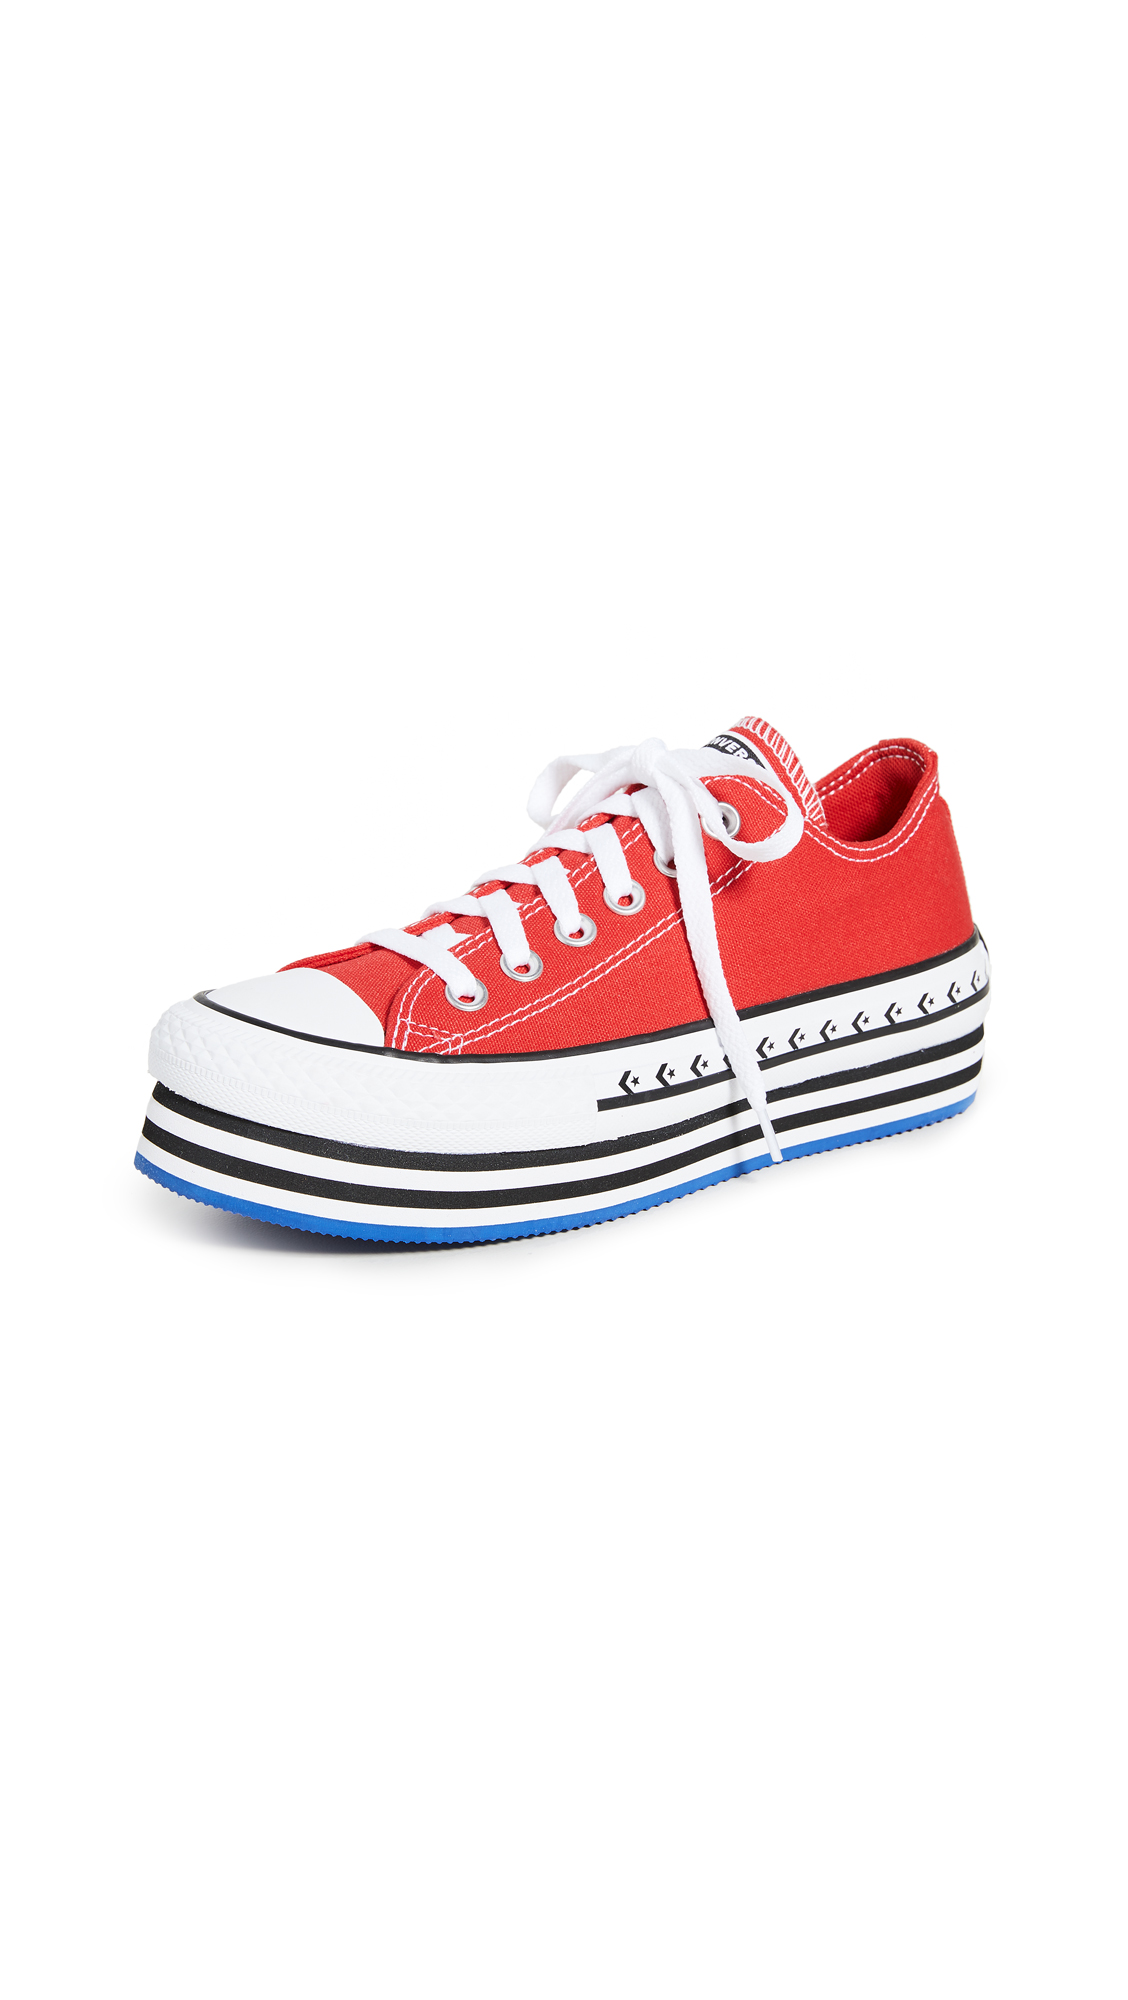 Buy Converse Chuck Taylor All Star Lift Archival Canvas Ox Sneakers online, shop Converse